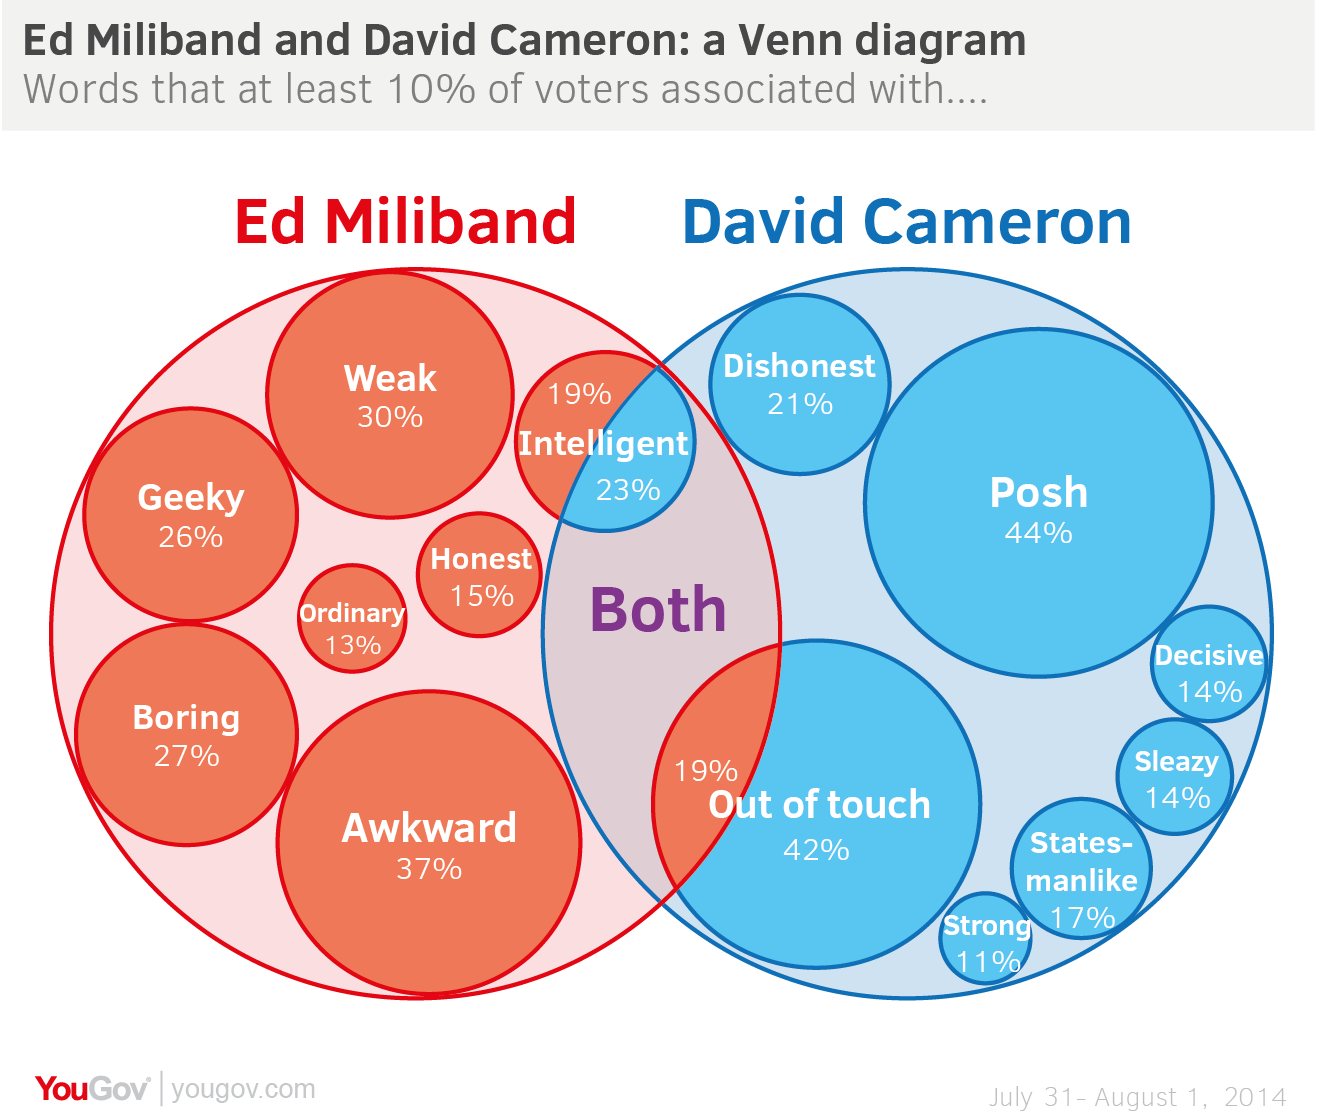 Yougov reputation venn diagram awkward meets posh the diagram also sheds light on something the debate sometimes misses when talking about image while ed milibands image has some big negatives for a party pooptronica Images